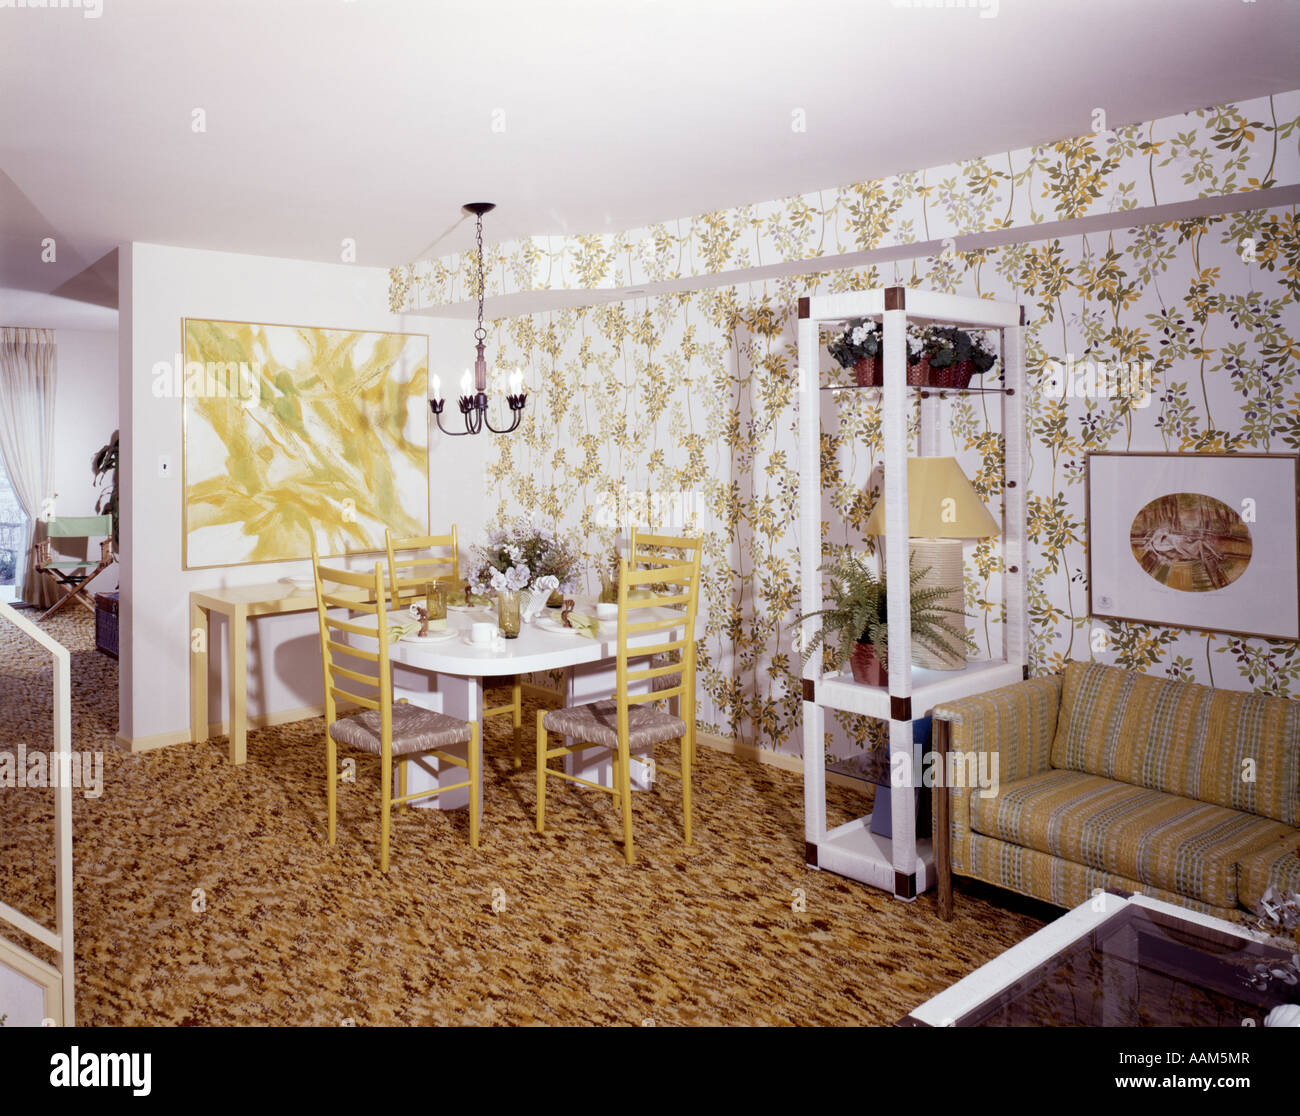 1970 1970s LIVING DINING ROOM DINETTE TABLE YELLOW CHAIRS PRINT WALLPAPER STRIPE COUCH CARPET HOME DECOR RETRO